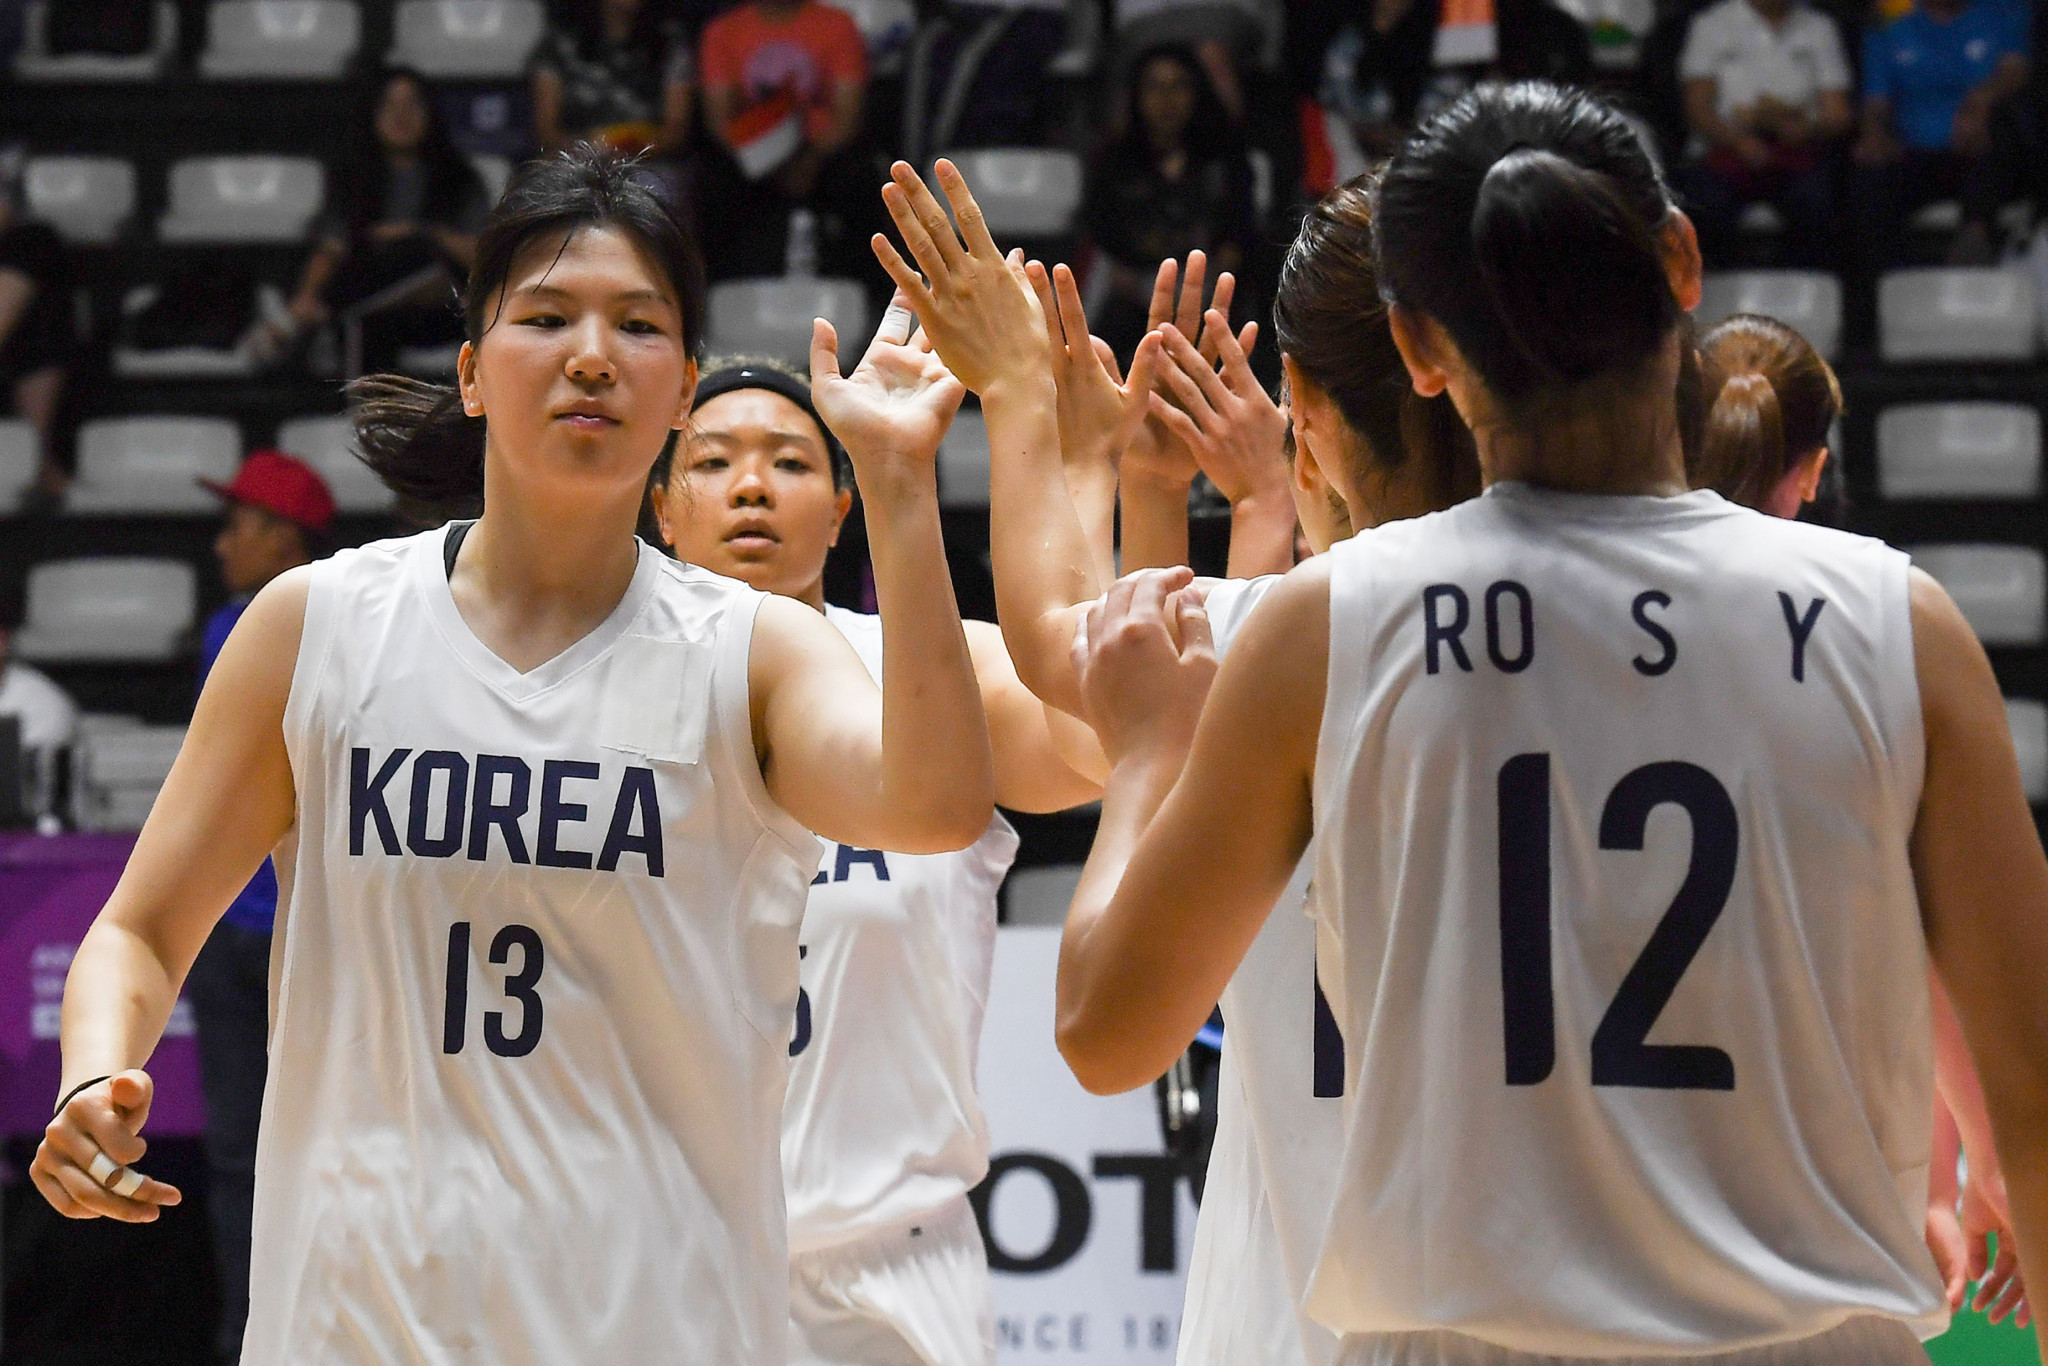 OCA praise Korean cooperation at Asian Games as joint women's basketball side begin with a bang